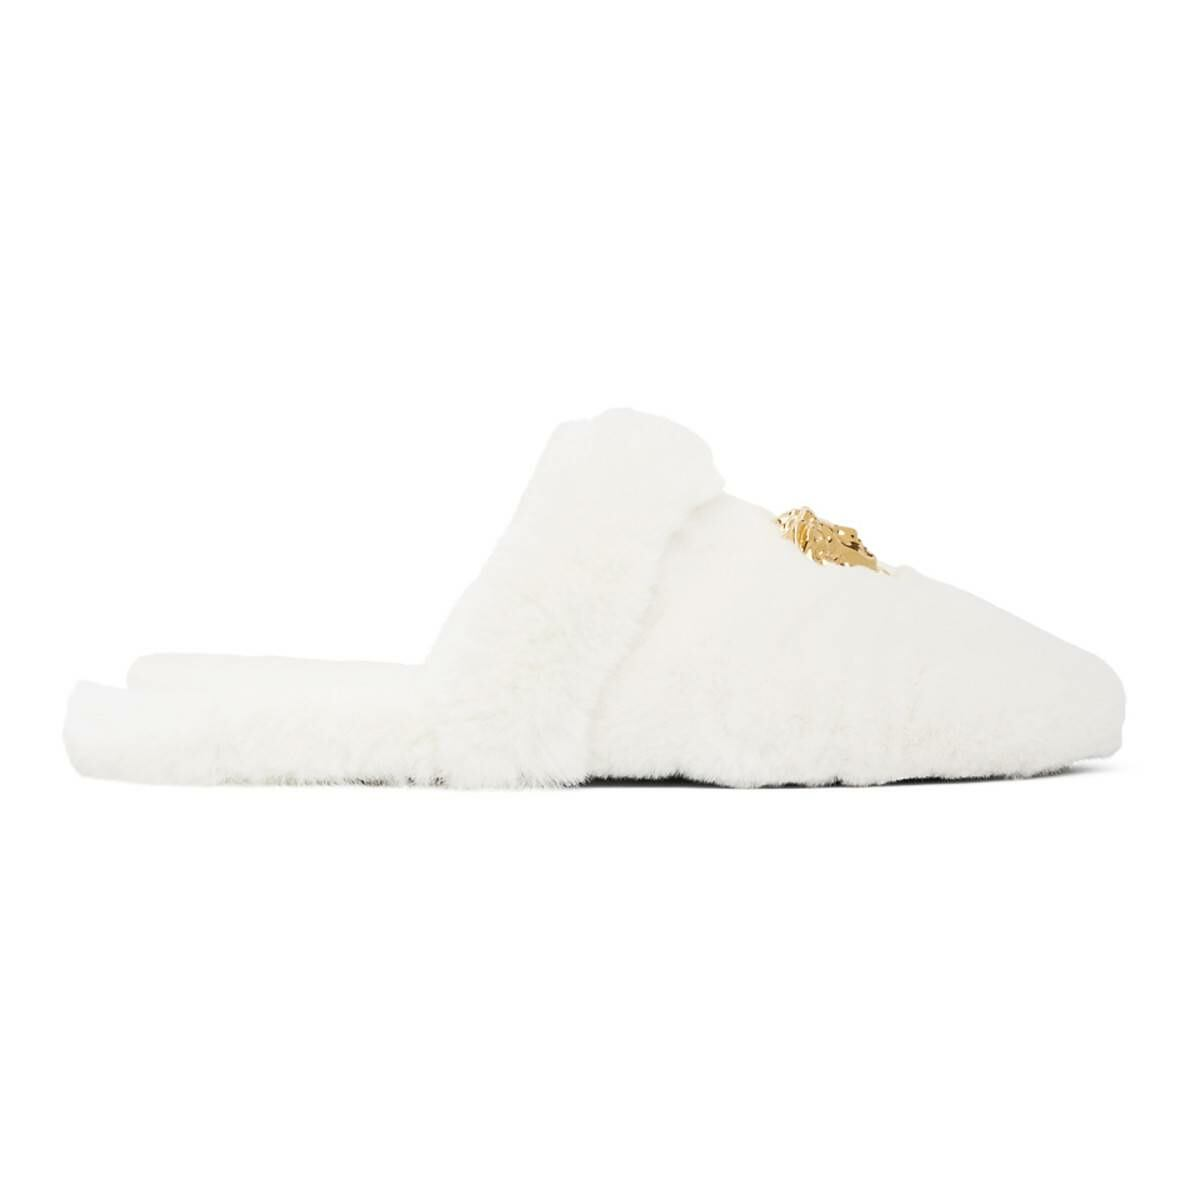 Versace White Faux-Fur Palazzo Slippers Ssense USA MEN Men SHOES Mens LOAFERS